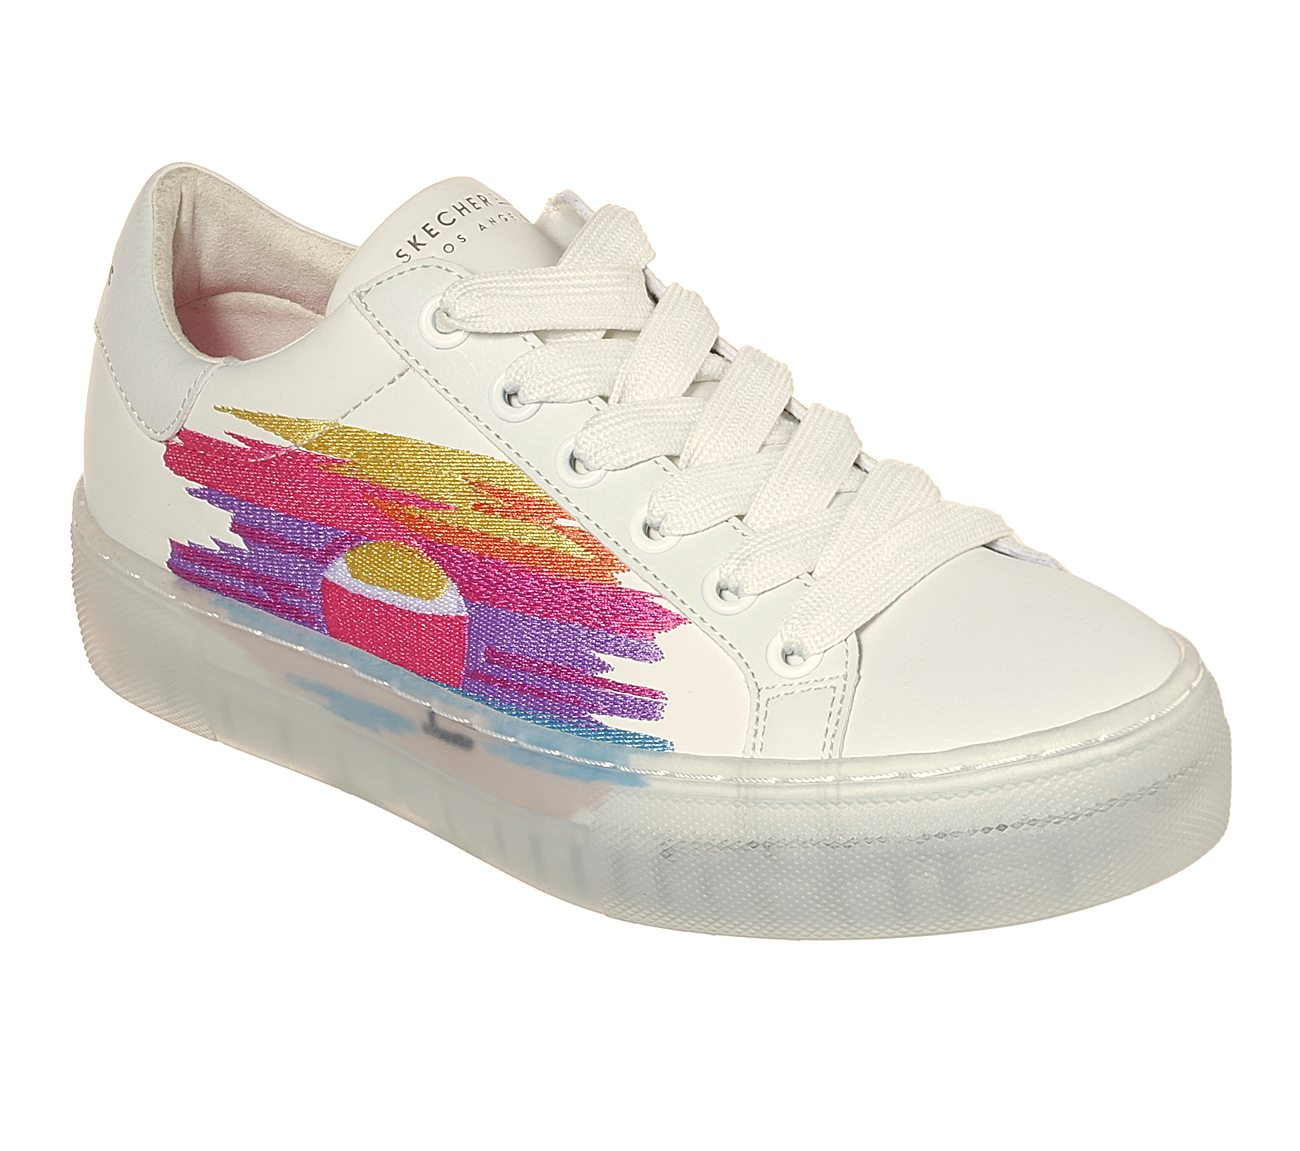 Skechers Alba Sun-Sational Sneaker (Women's)